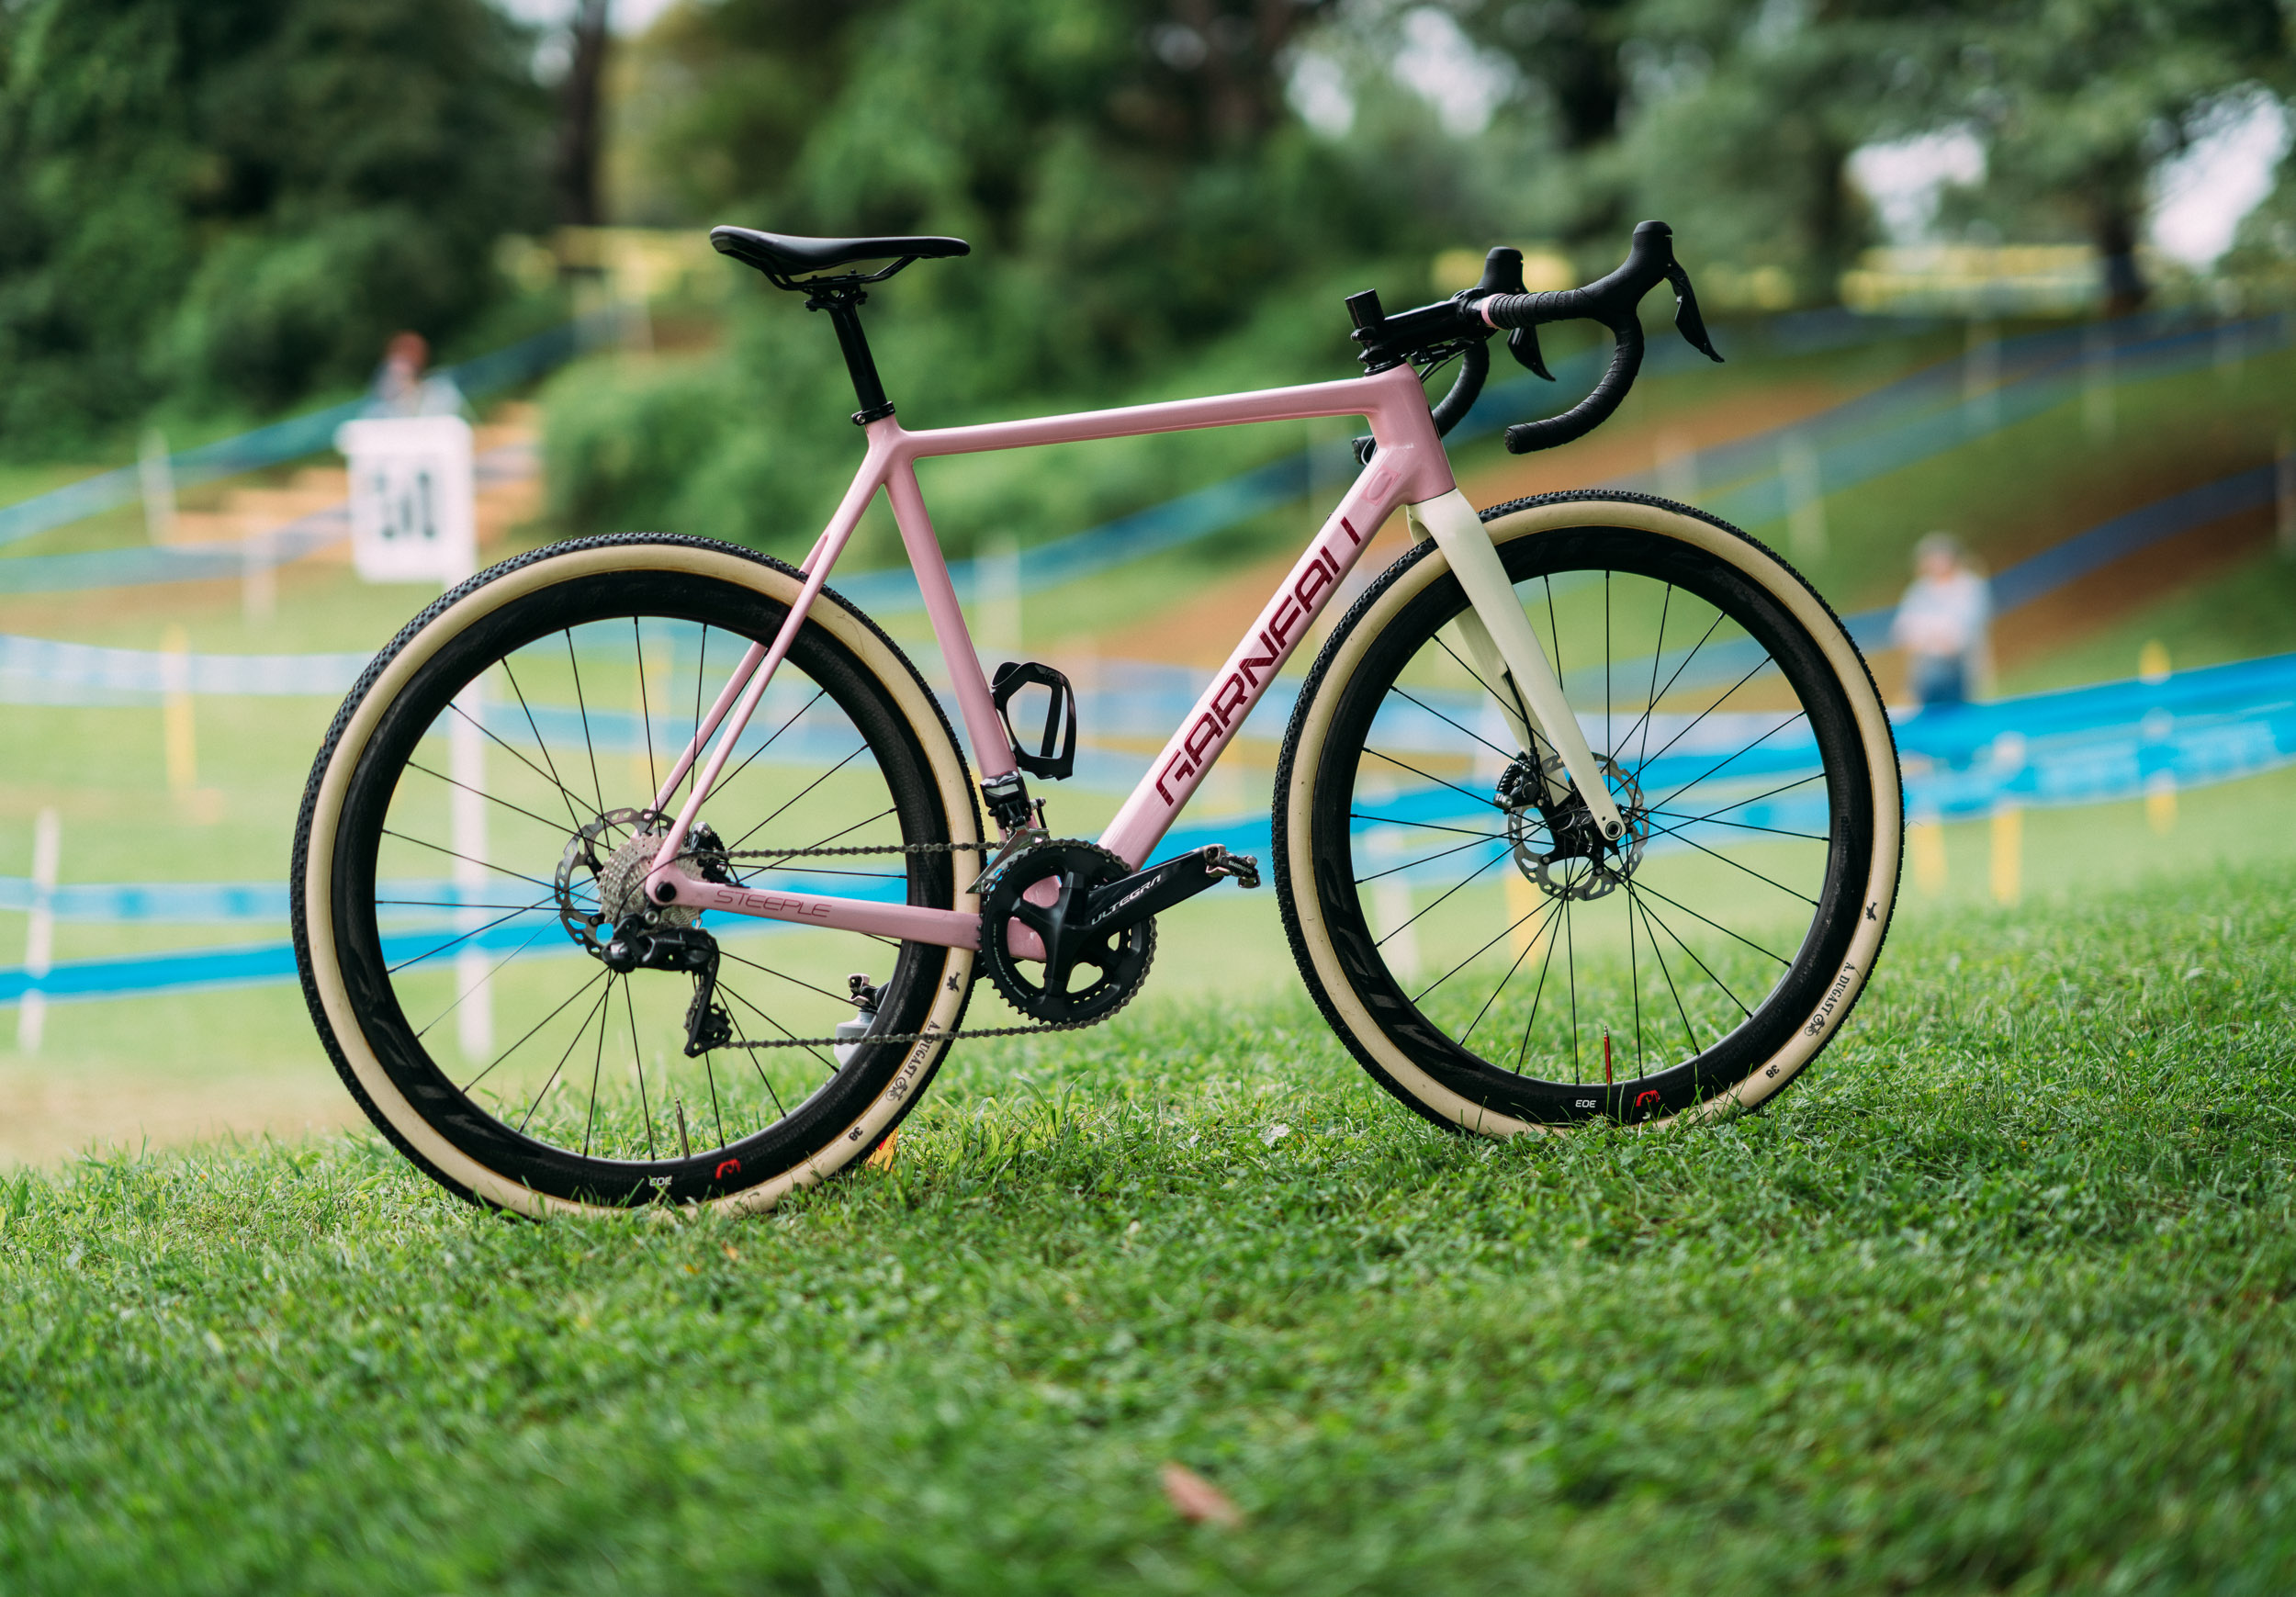 Clay's  pink Steeple went into action for the first time and the Dugast 38 tubulars served him well.